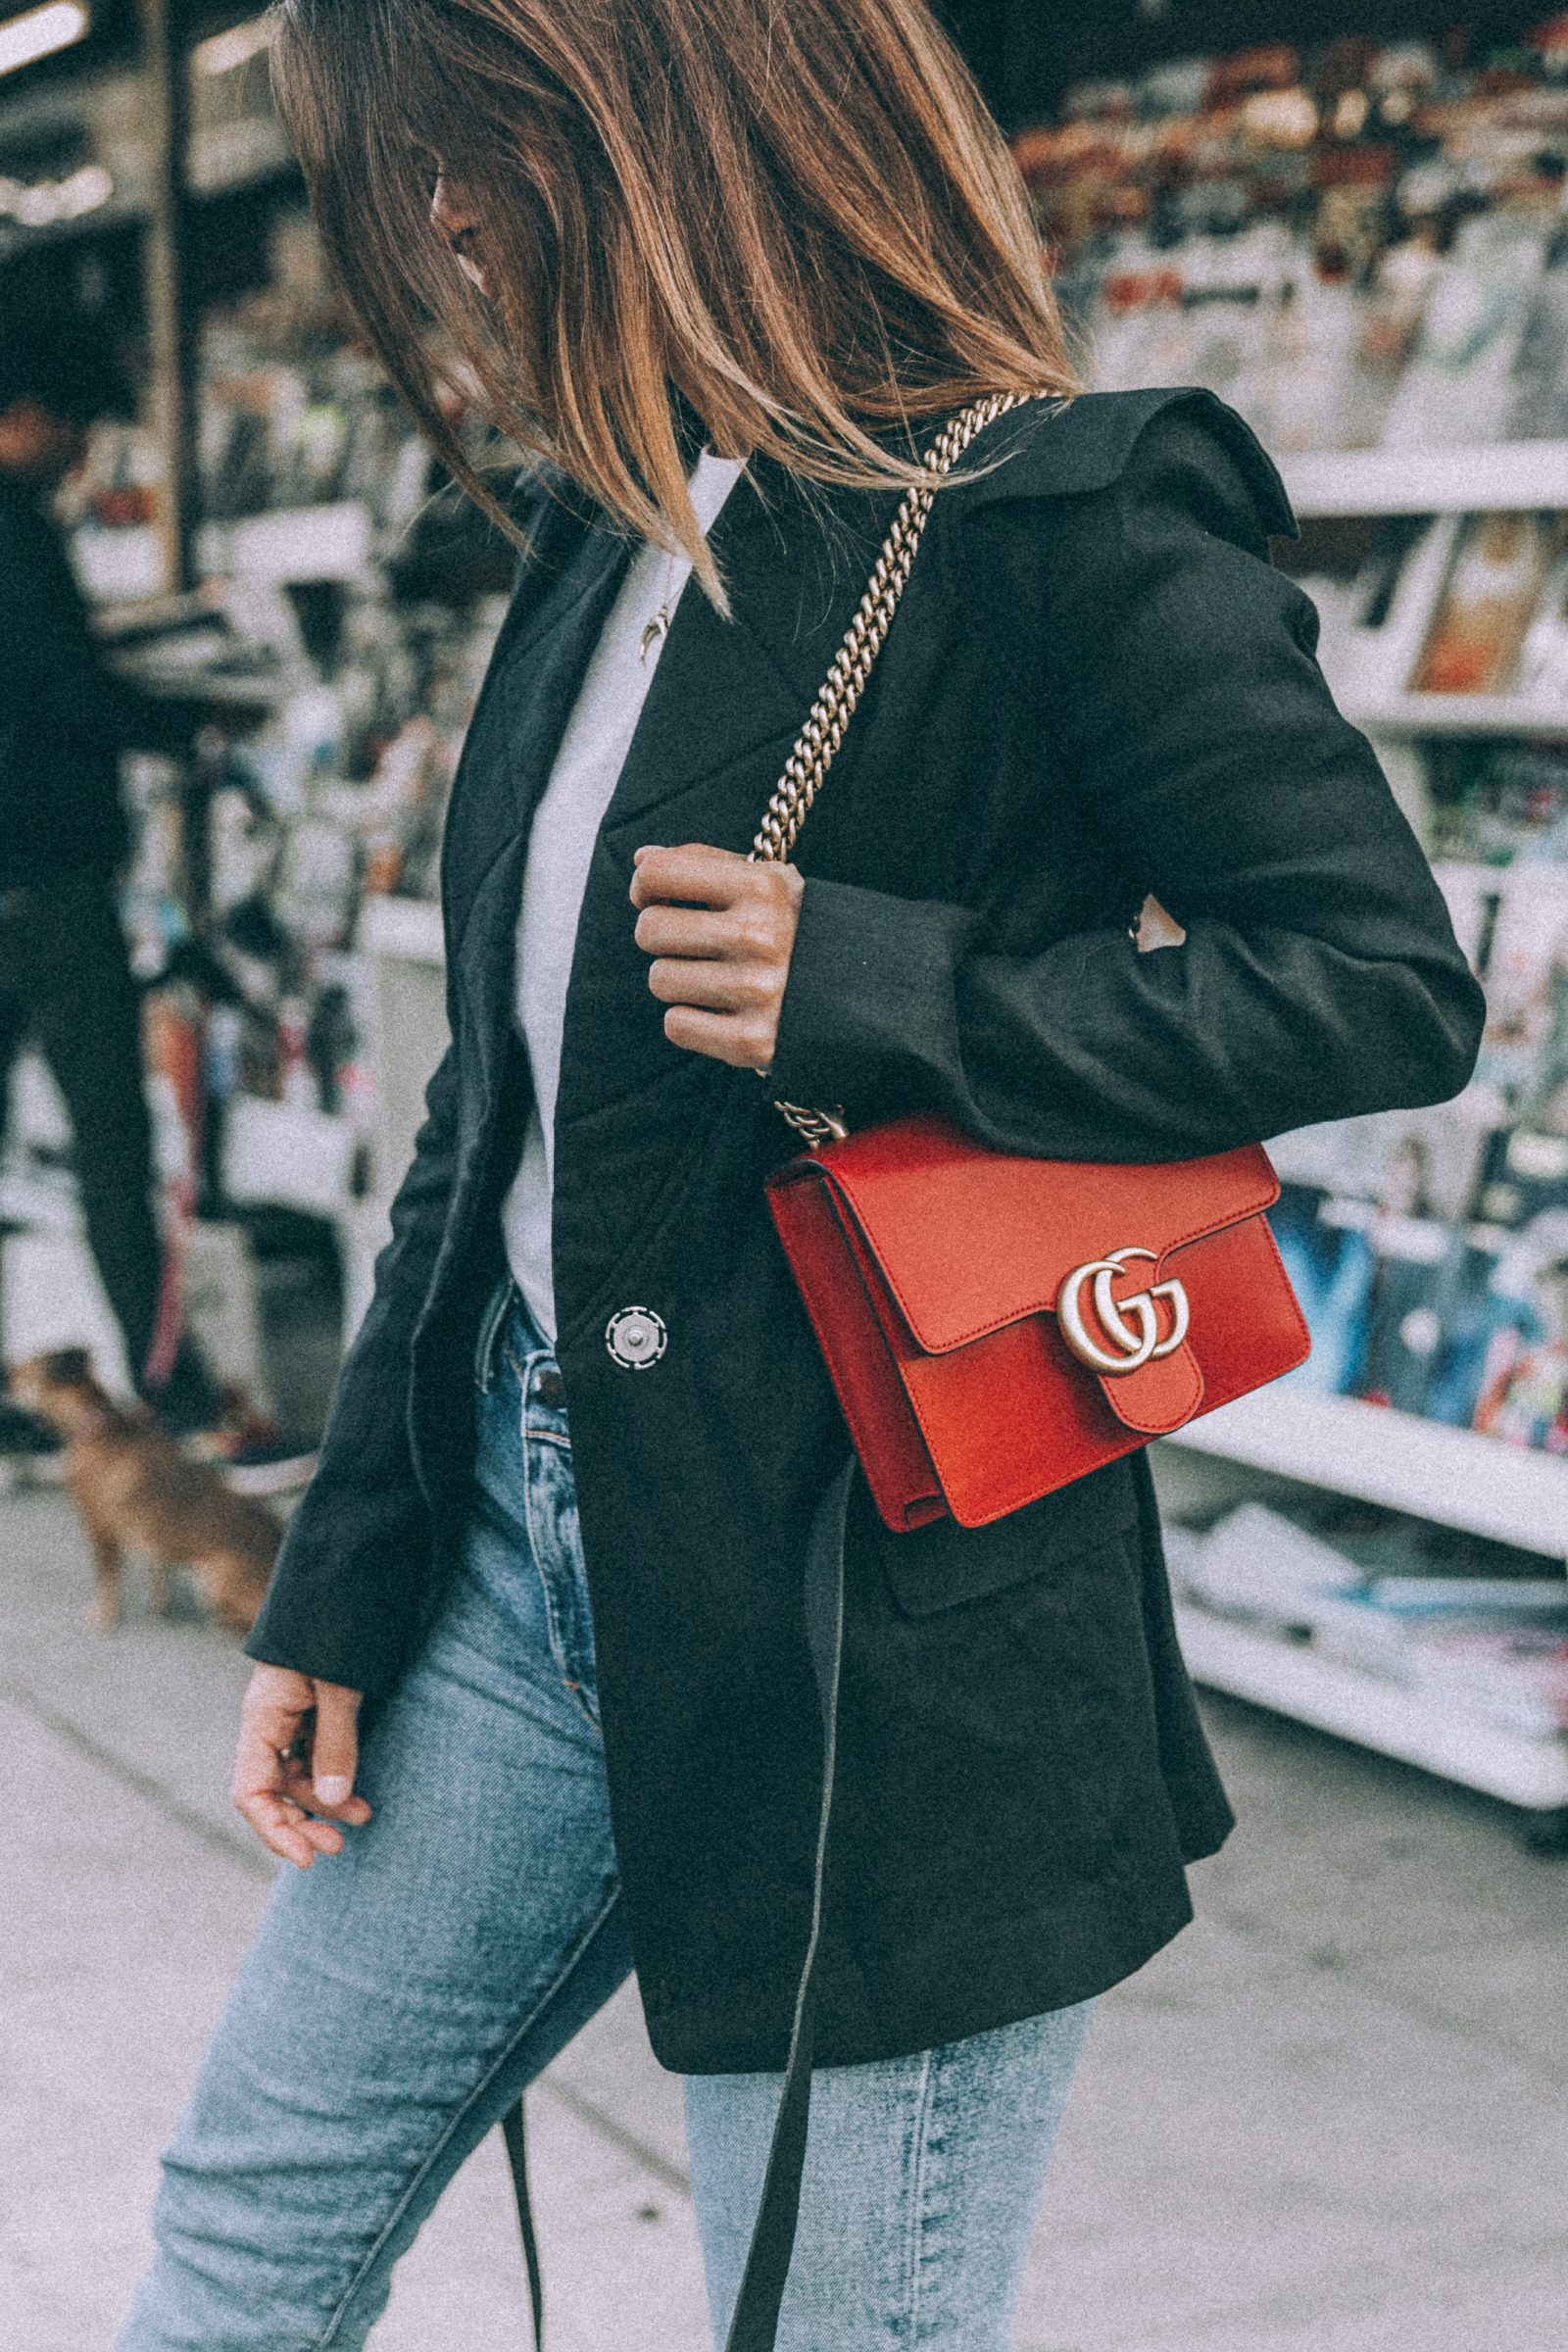 red_bag-snake_boots-gucci-levis-jeans-denim-iro_paris-black_blazer-los_angeles-la-fairfax-outfit-street_style-collage_vintage-7